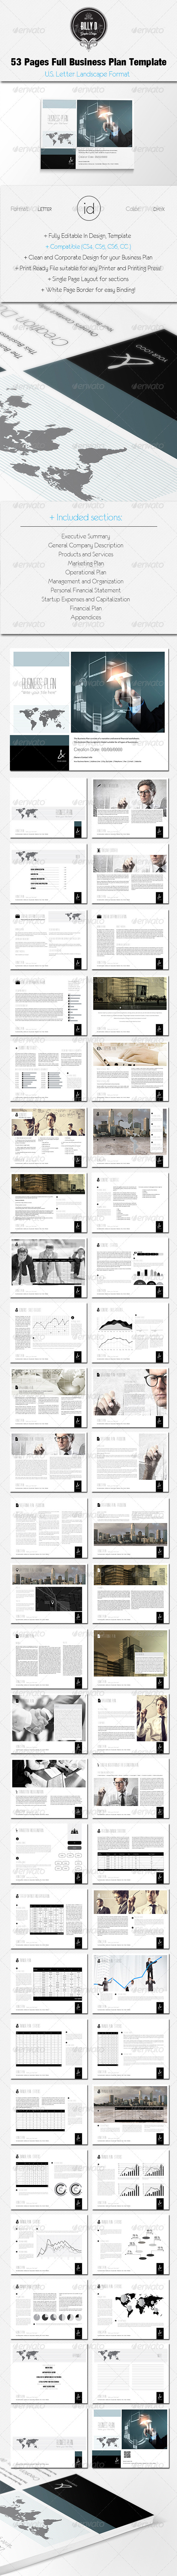 GraphicRiver 53 Pages Full Business Plan Template U.S Letter 8746274